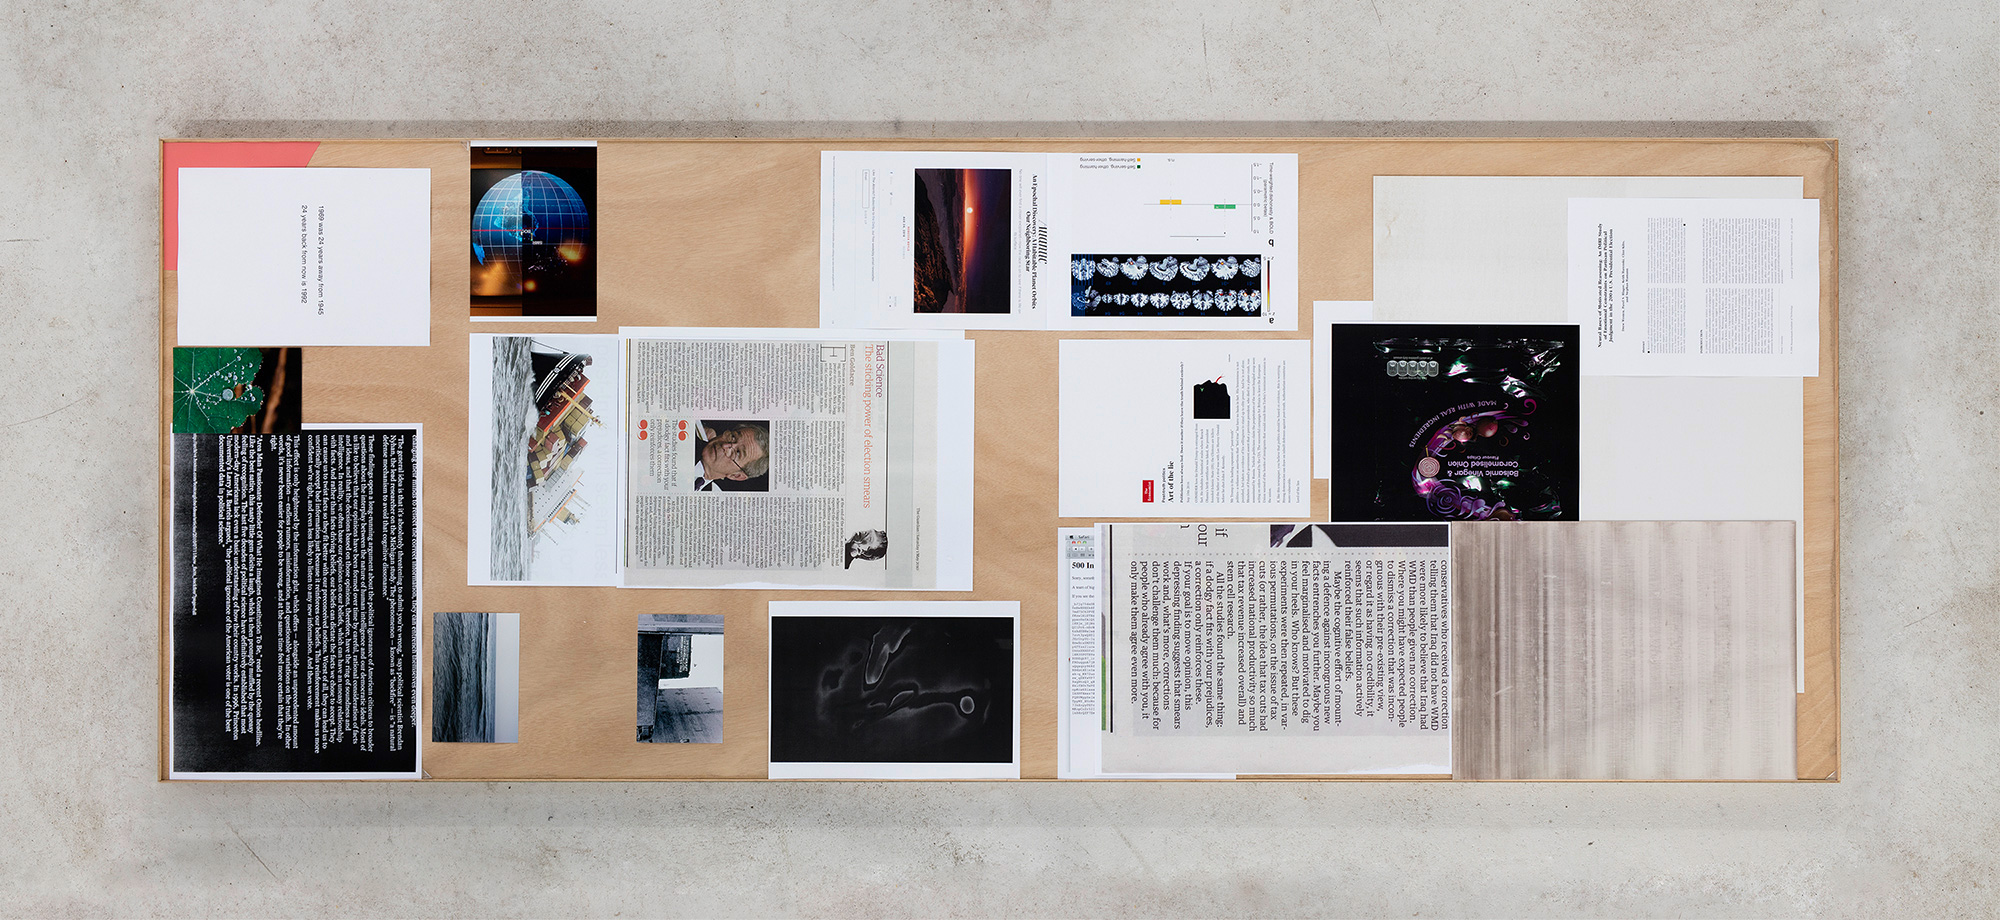 truth study center , Wolfgang Tillmans Tate, 2005–ongoing